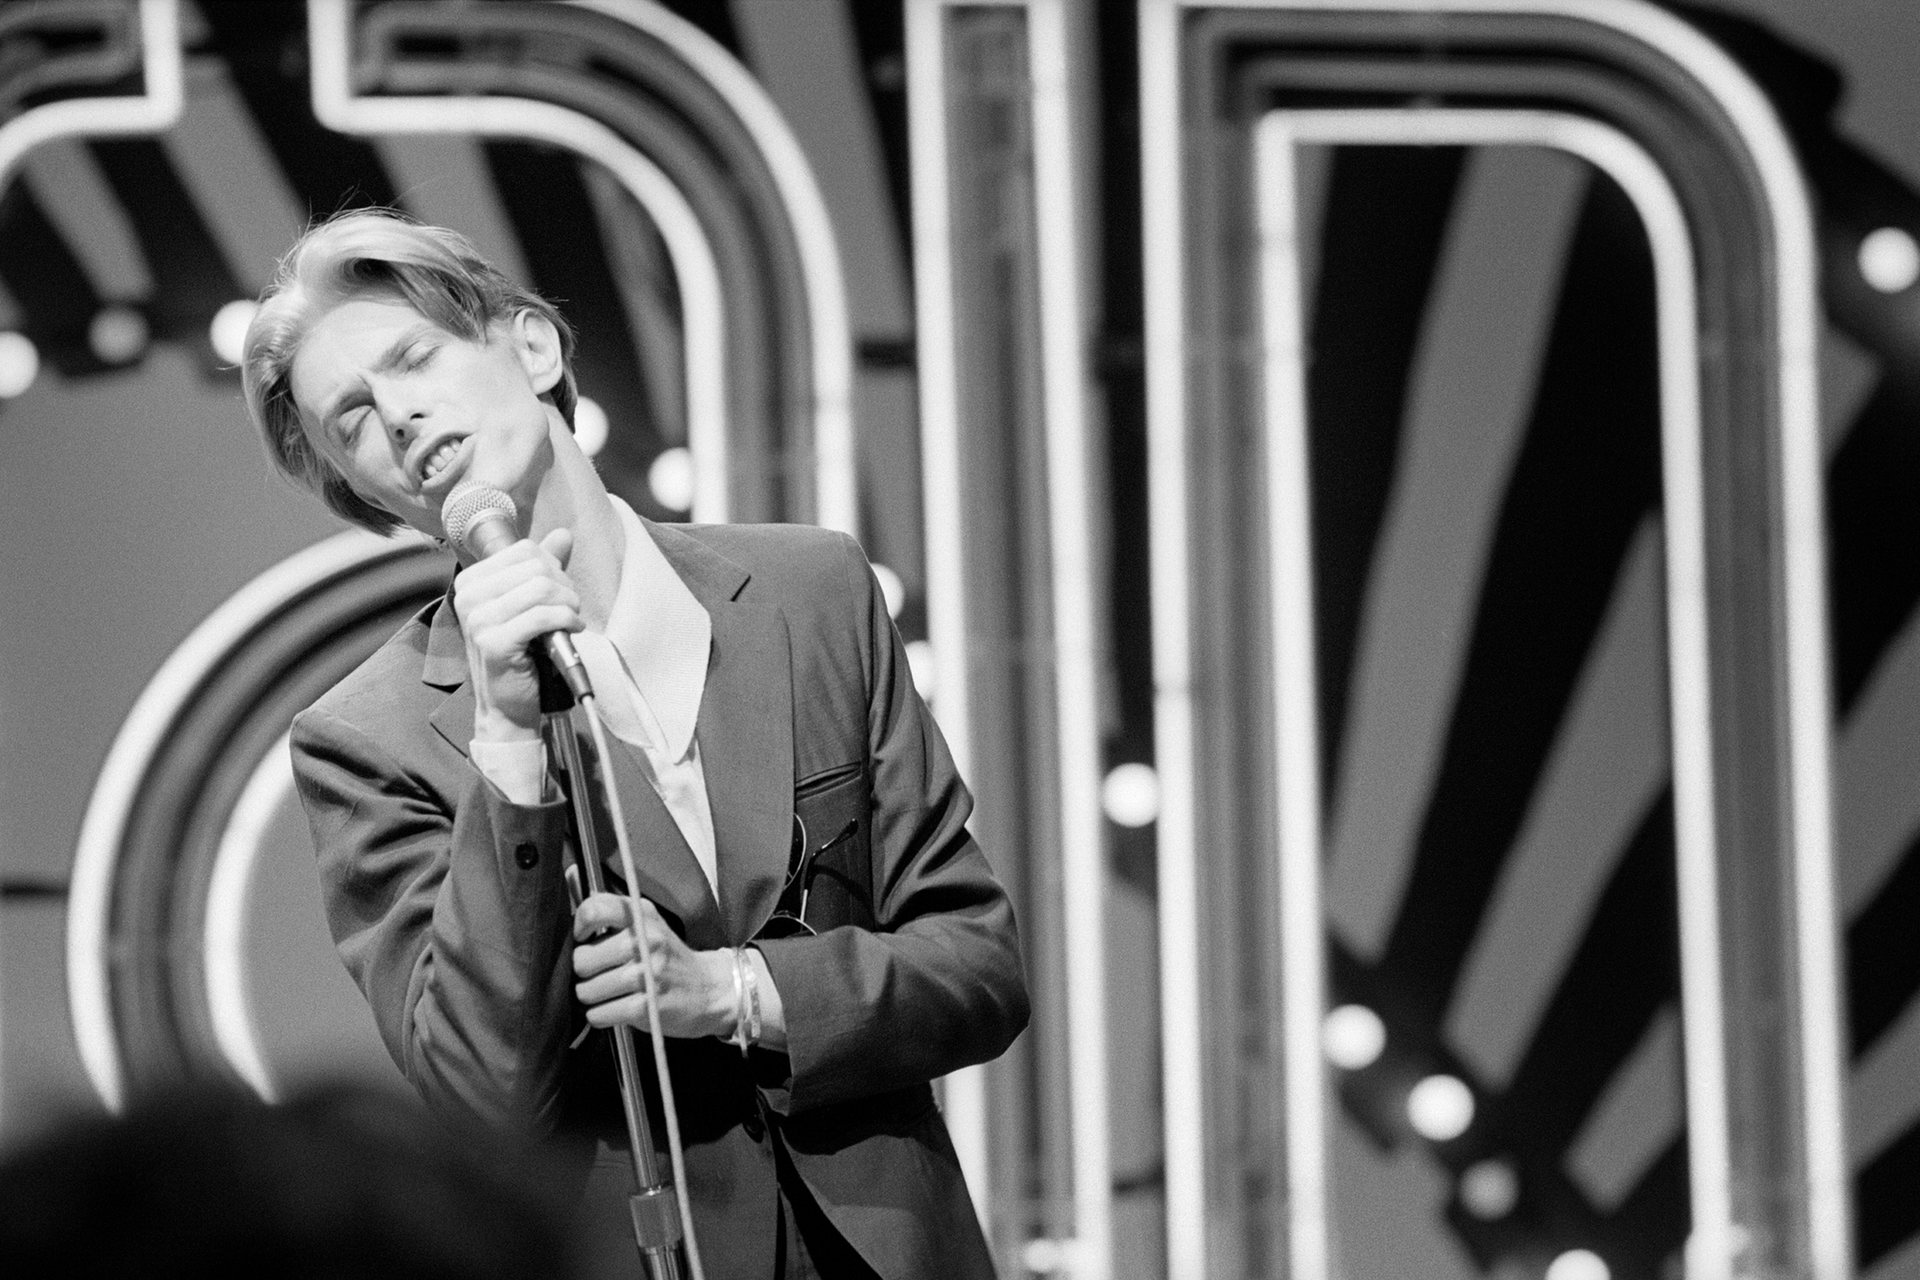 David Bowie performs Golden Years on Soul Train in 1975